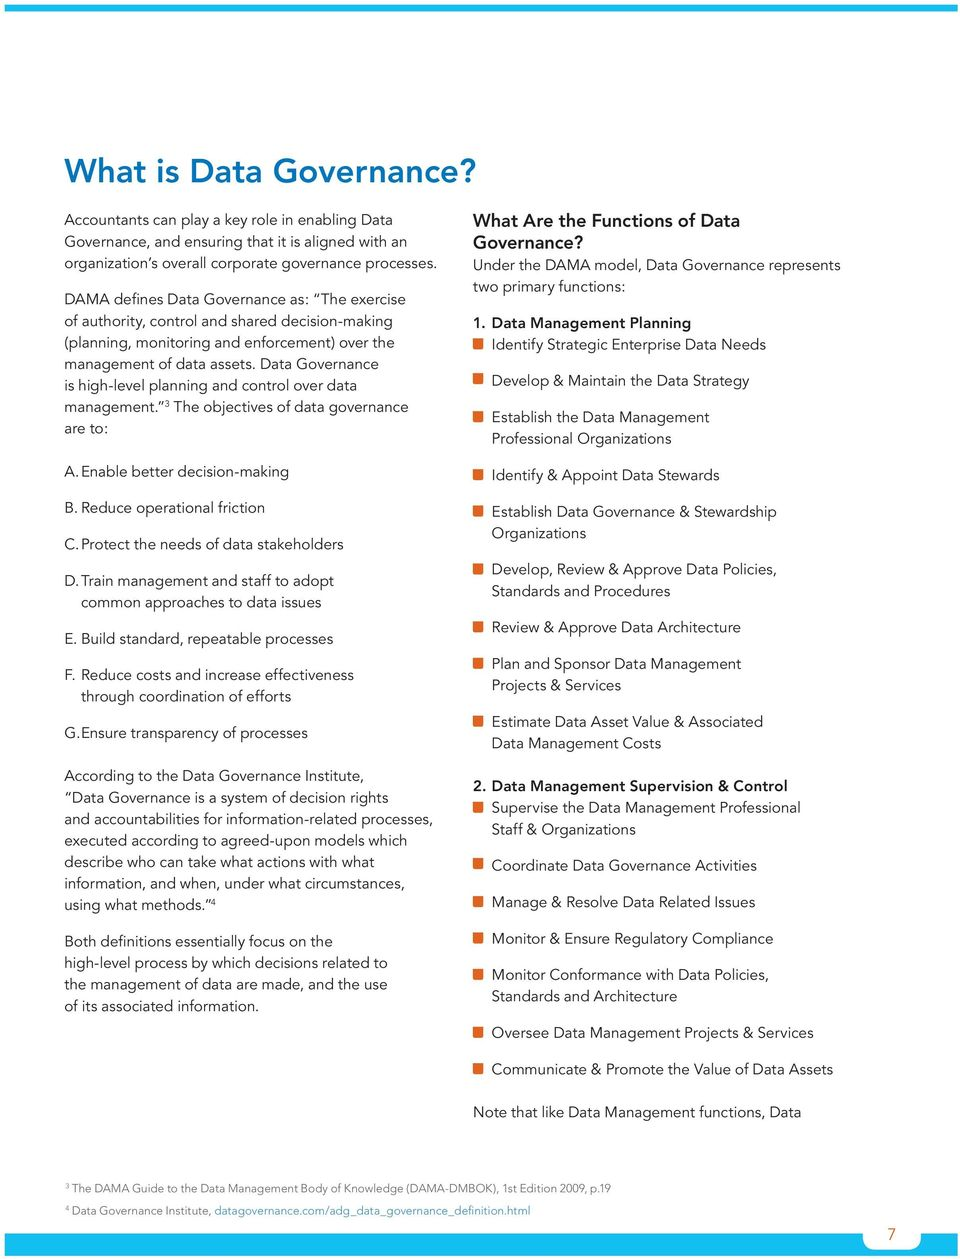 Data Governance is high-level planning and control over data management. 3 The objectives of data governance are to: A. Enable better decision-making B. Reduce operational friction C.